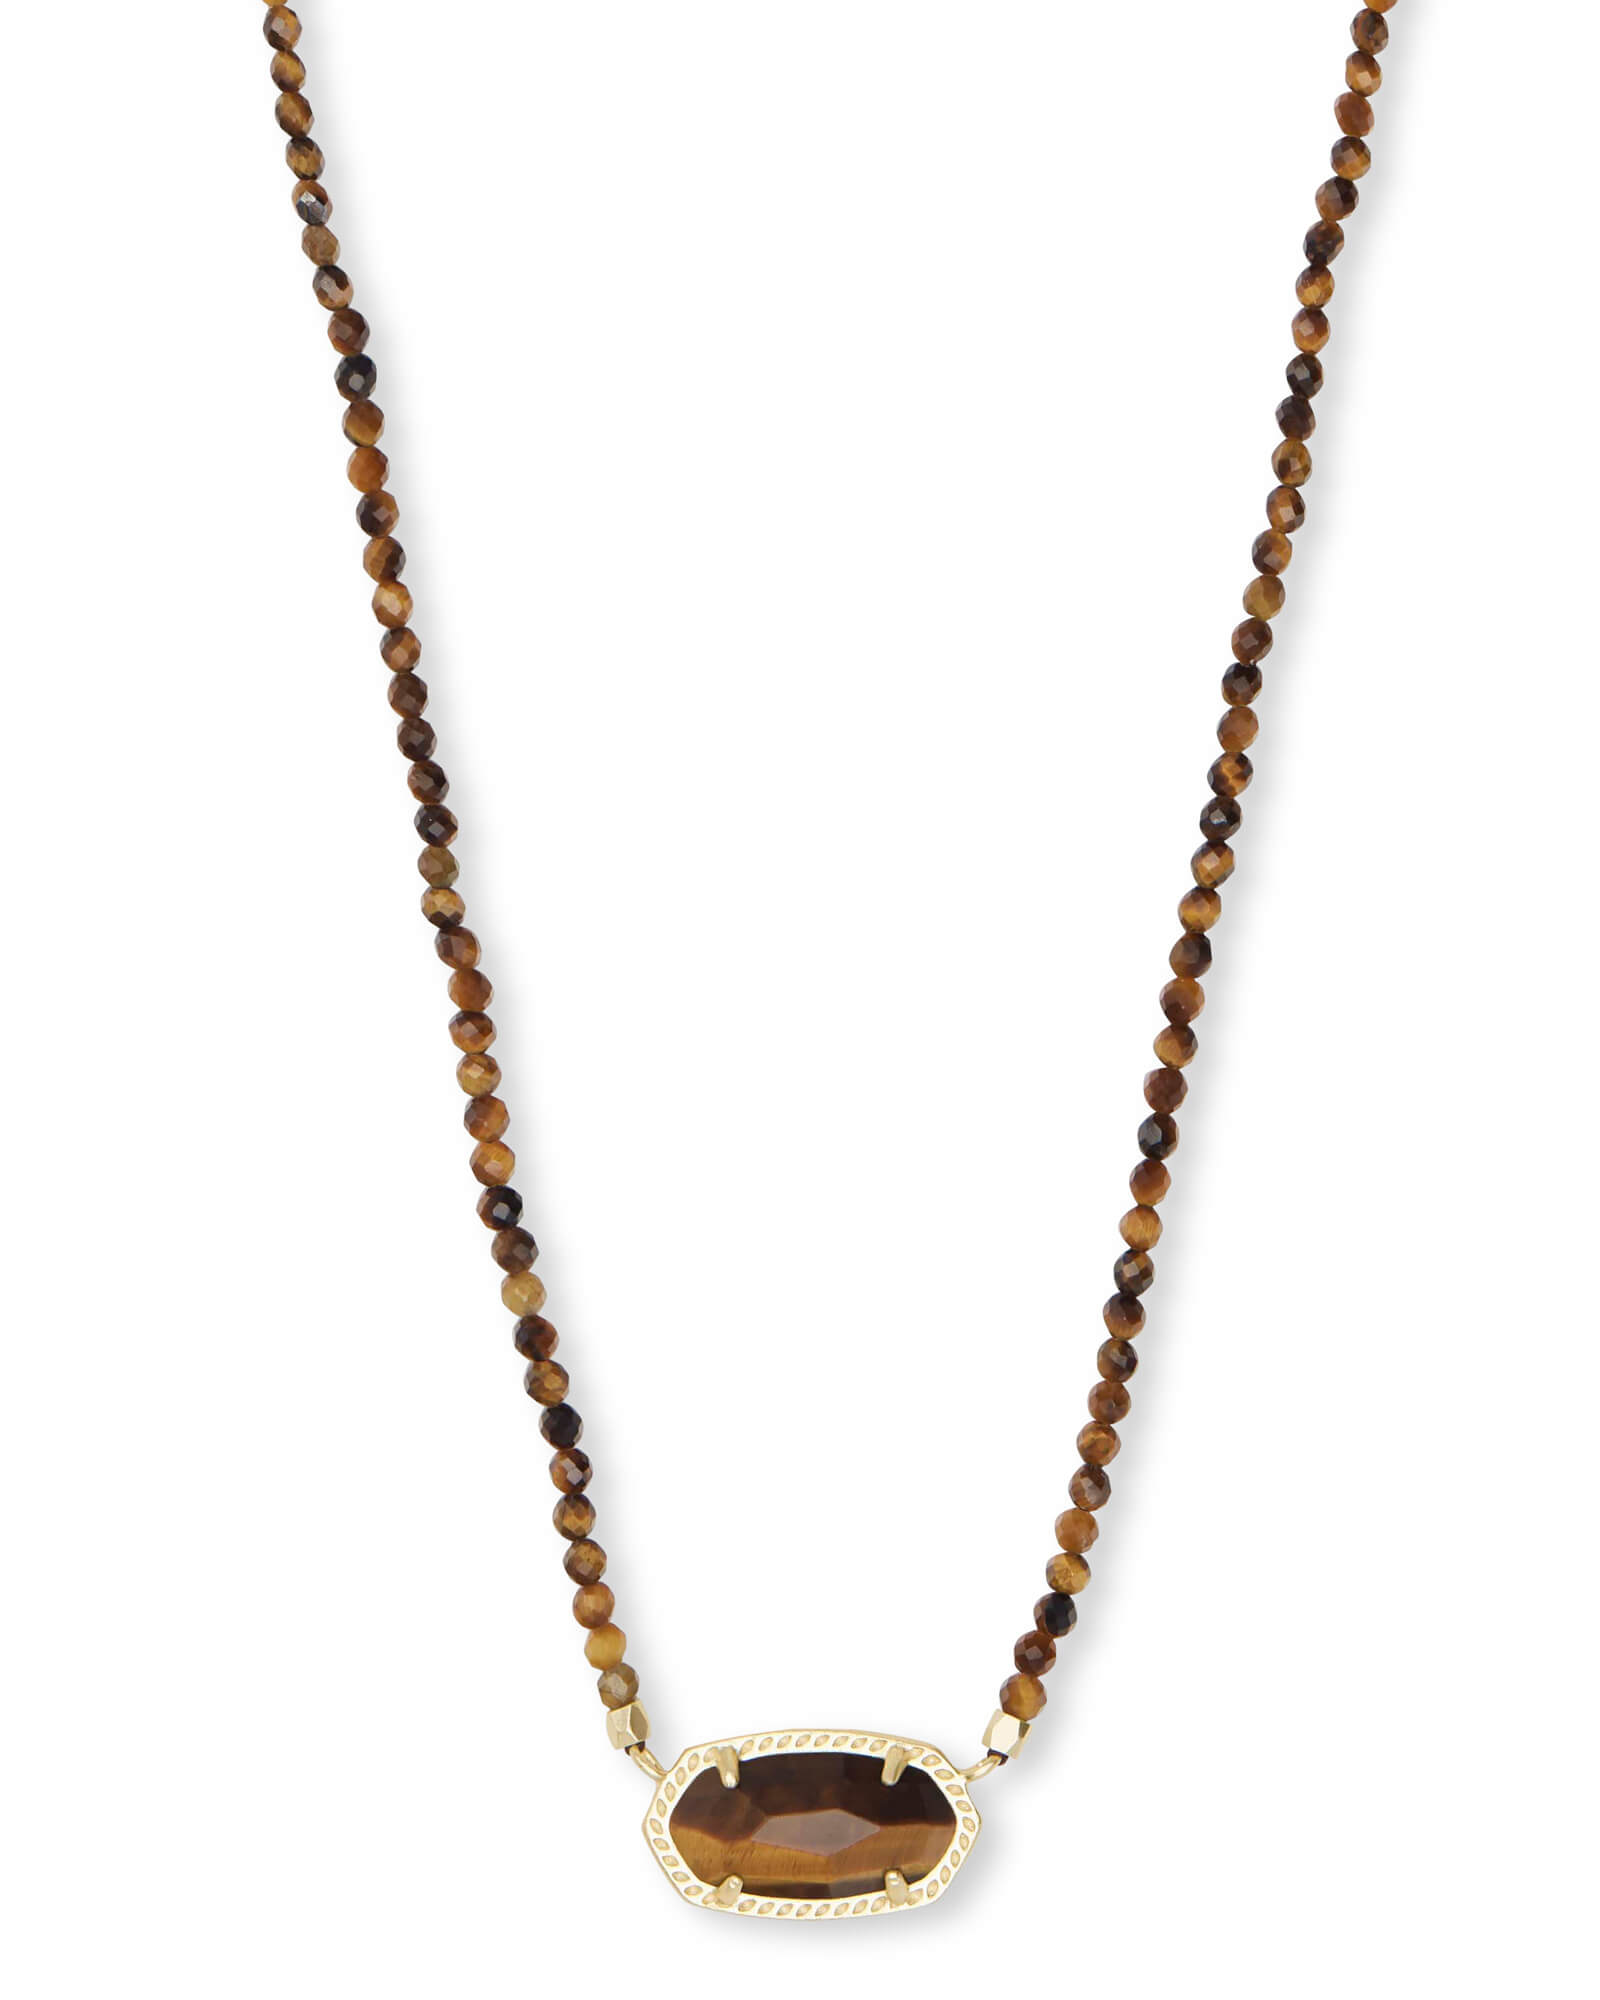 Elisa Gold Beaded Pendant Necklace in Brown Tigers Eye